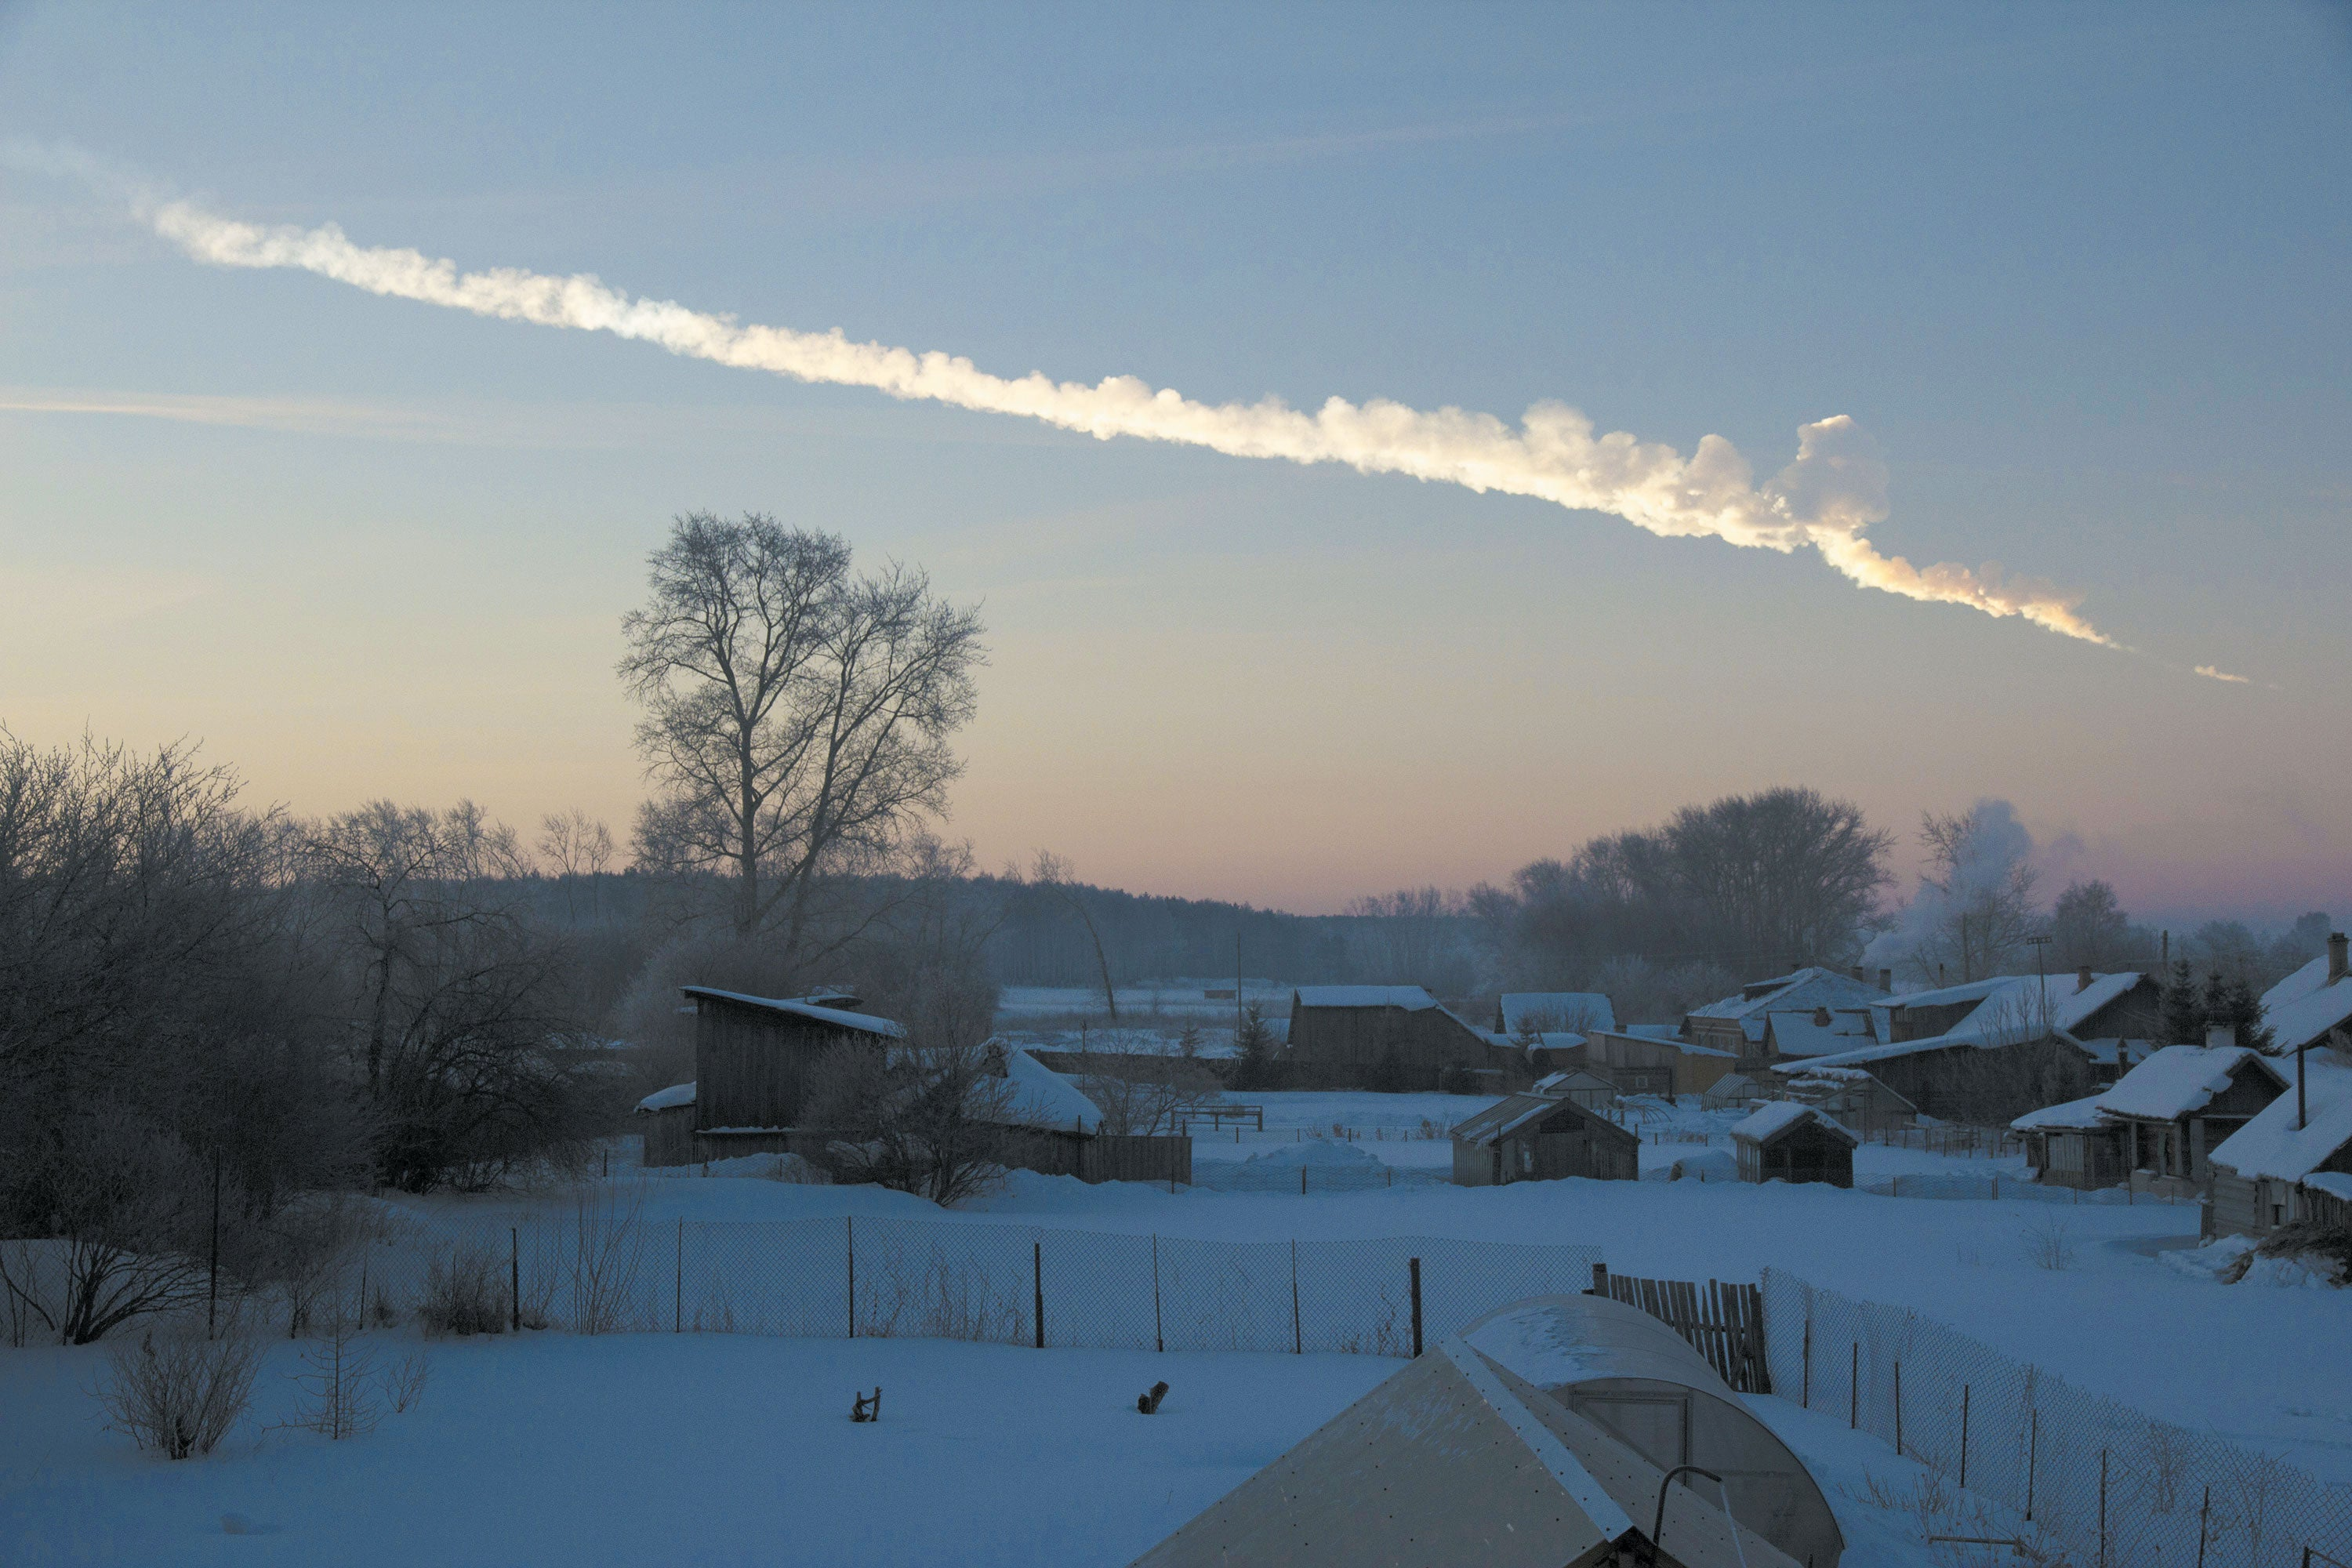 An asteroid the size of a house as it entered Earth's atmosphere and exploded over Chelyabinsk, Russia in 2013.